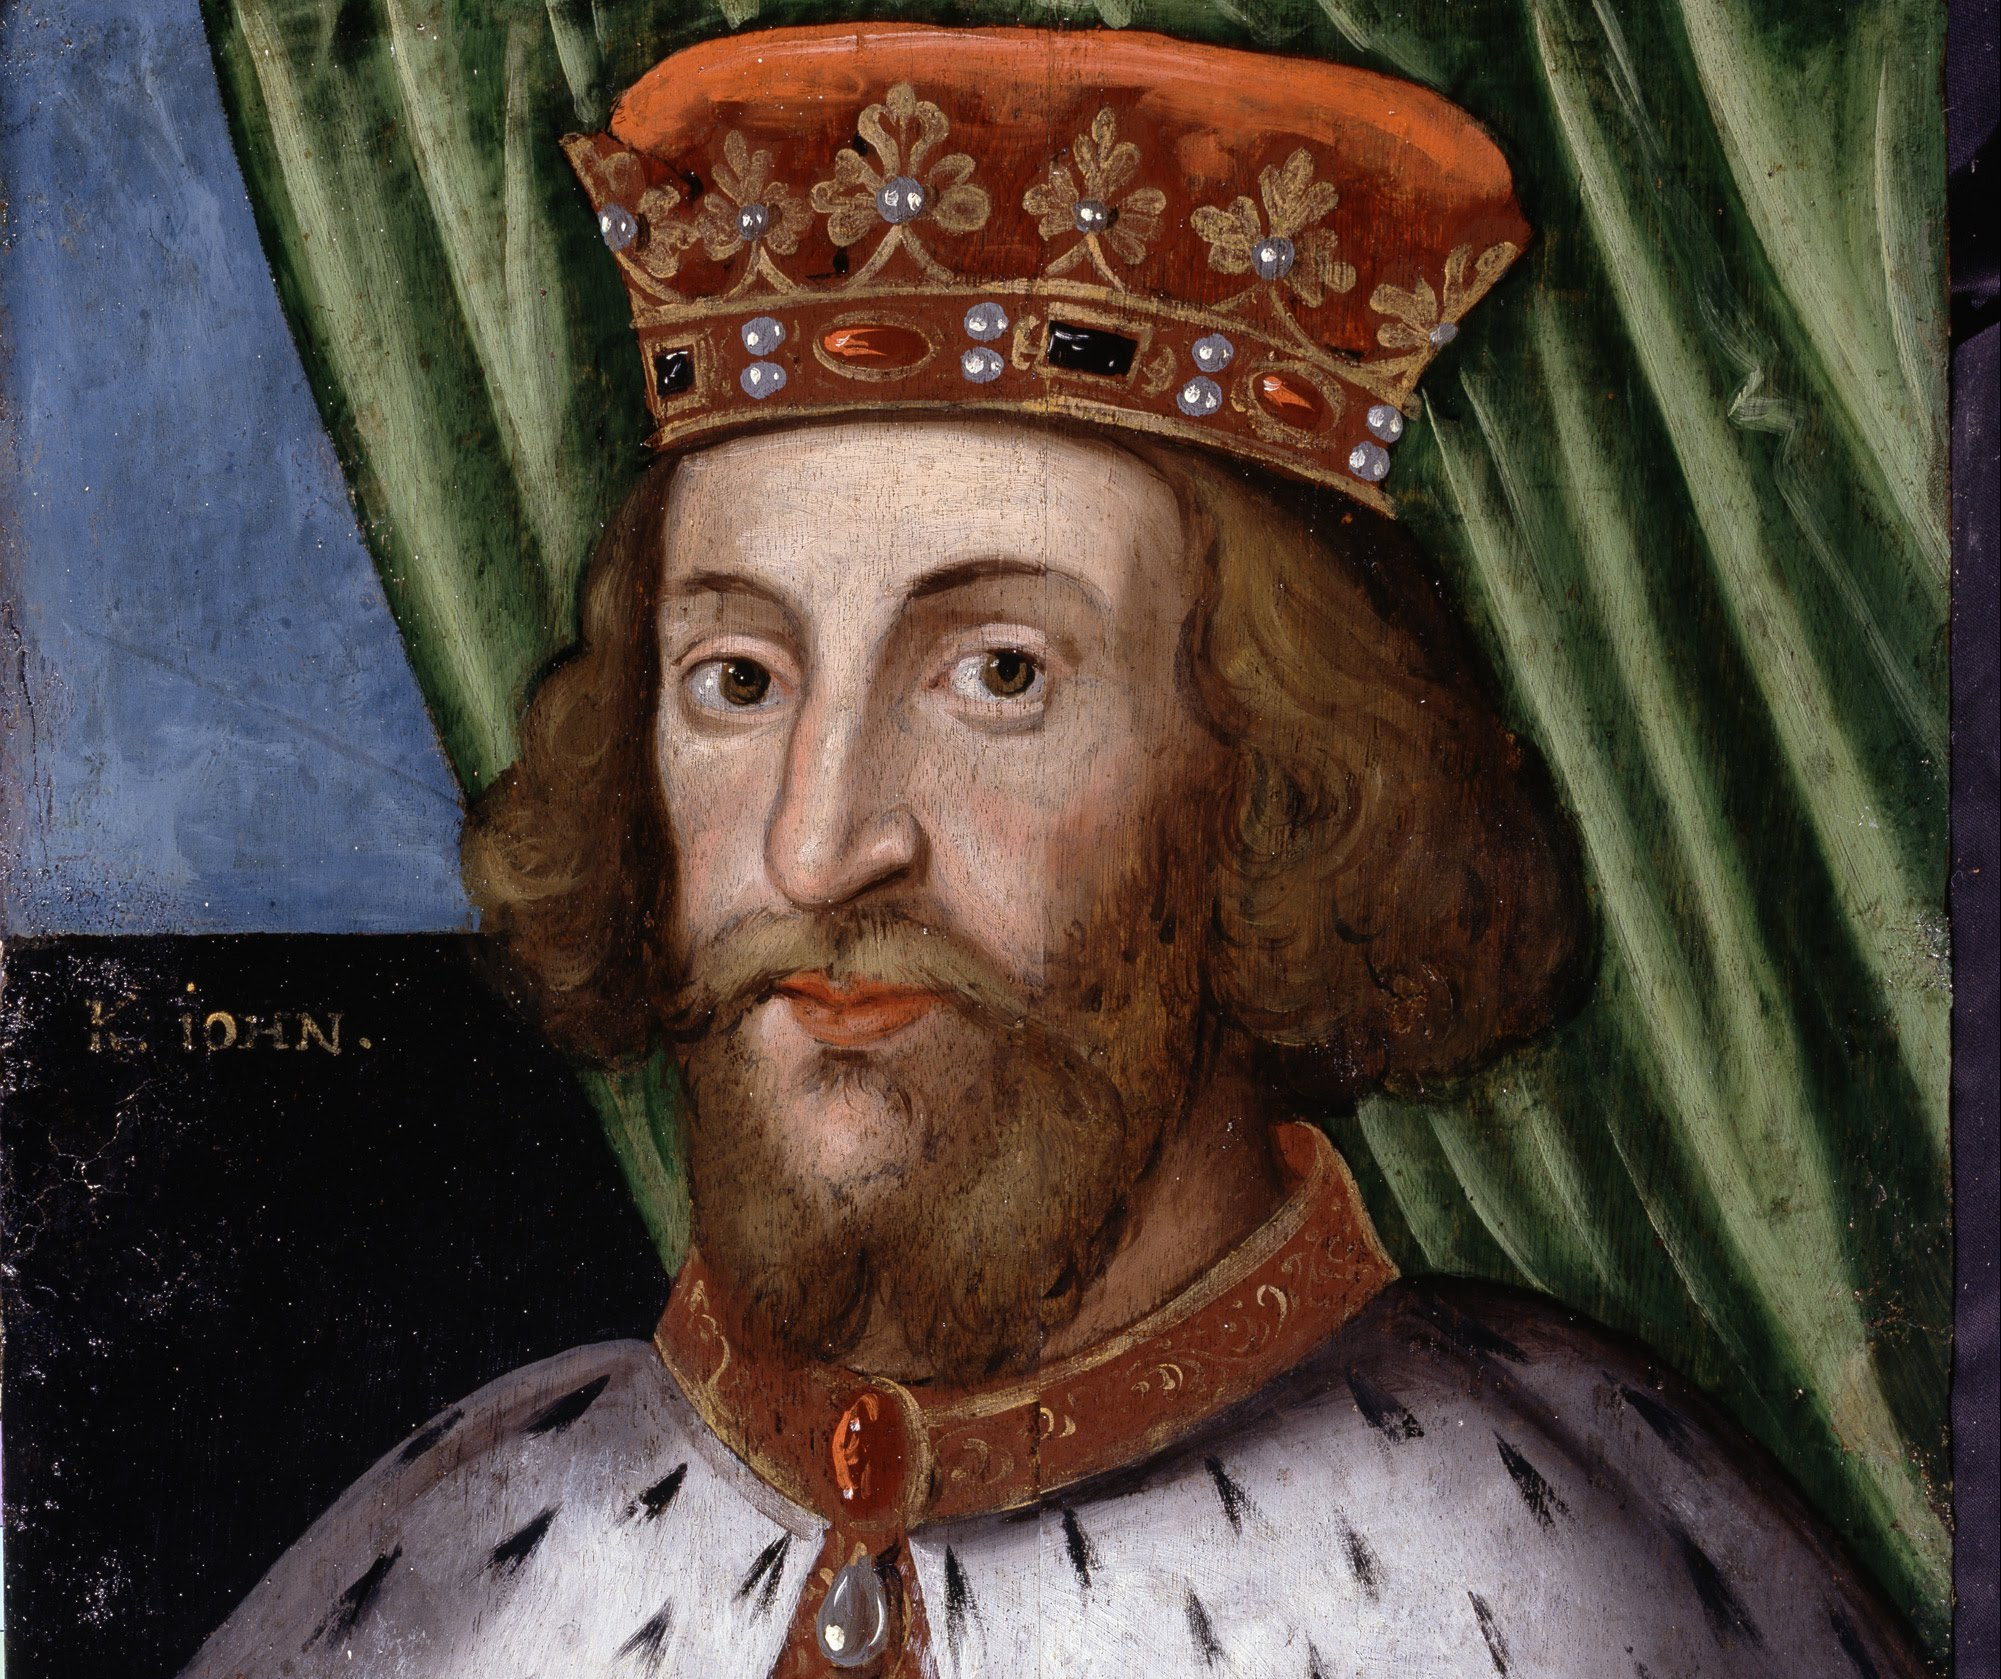 King John facts